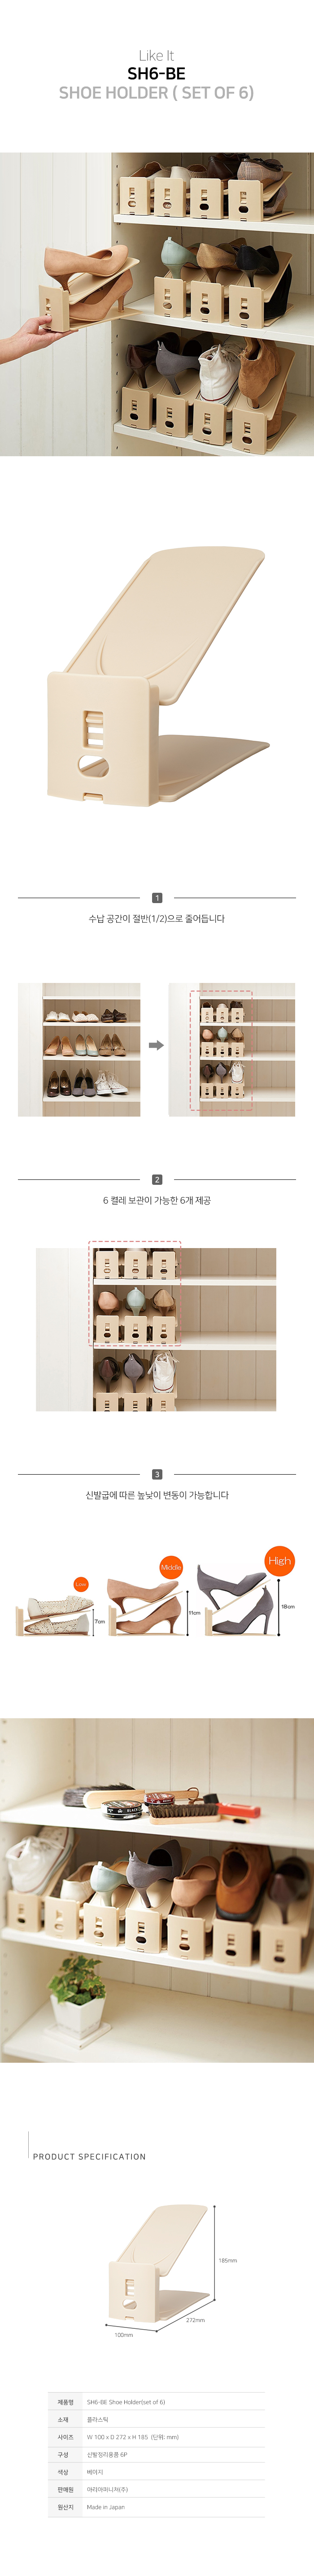 Shoe_Holder(set_of_6)_Be.jpg